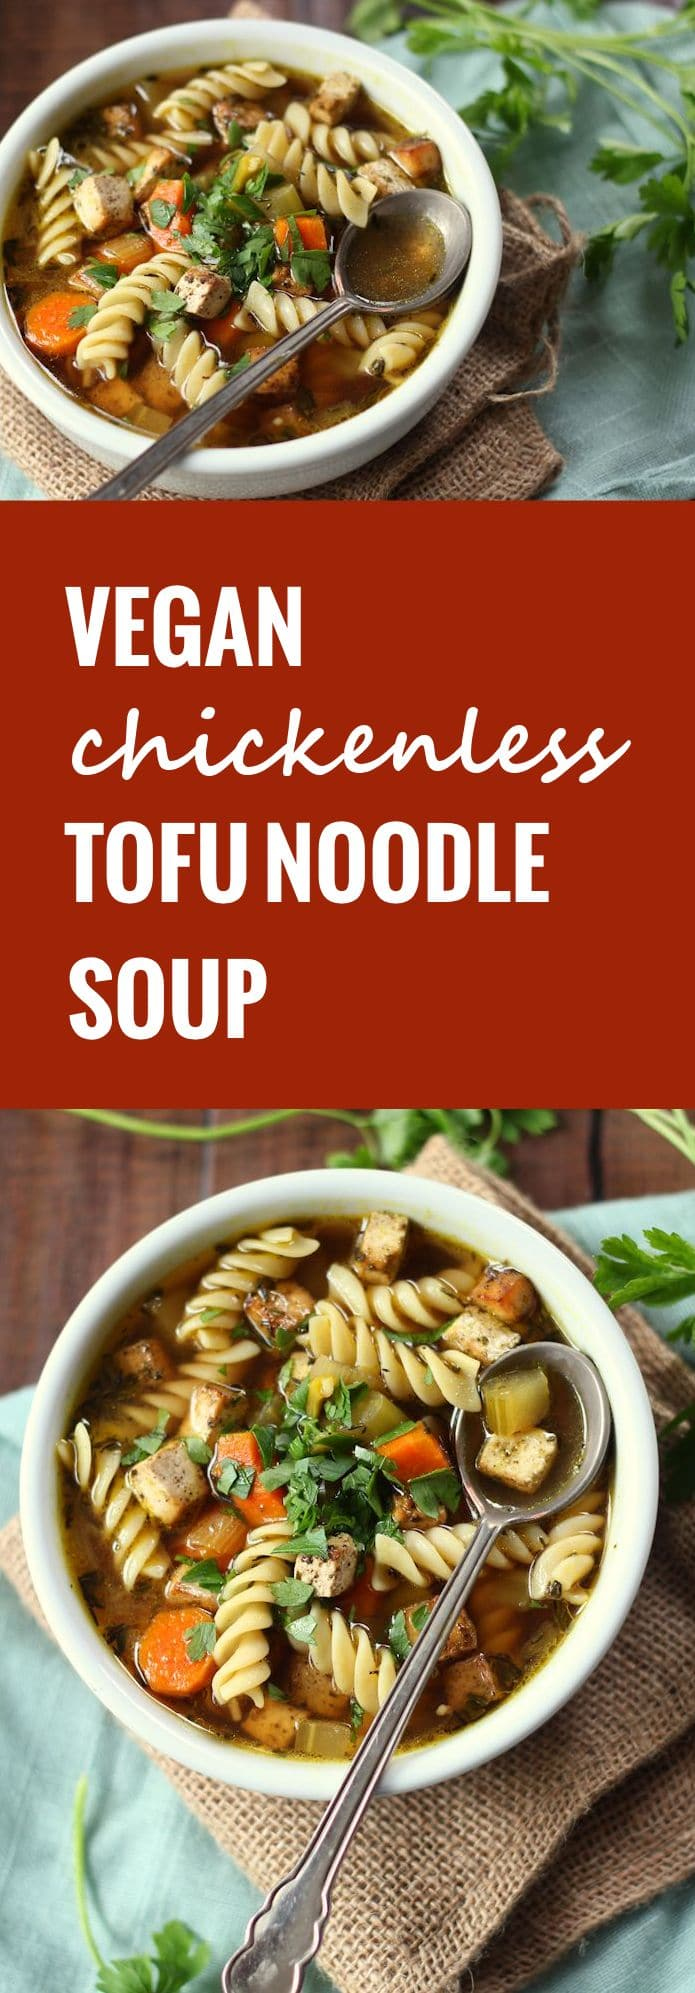 Chickenless Tofu Noodle Soup